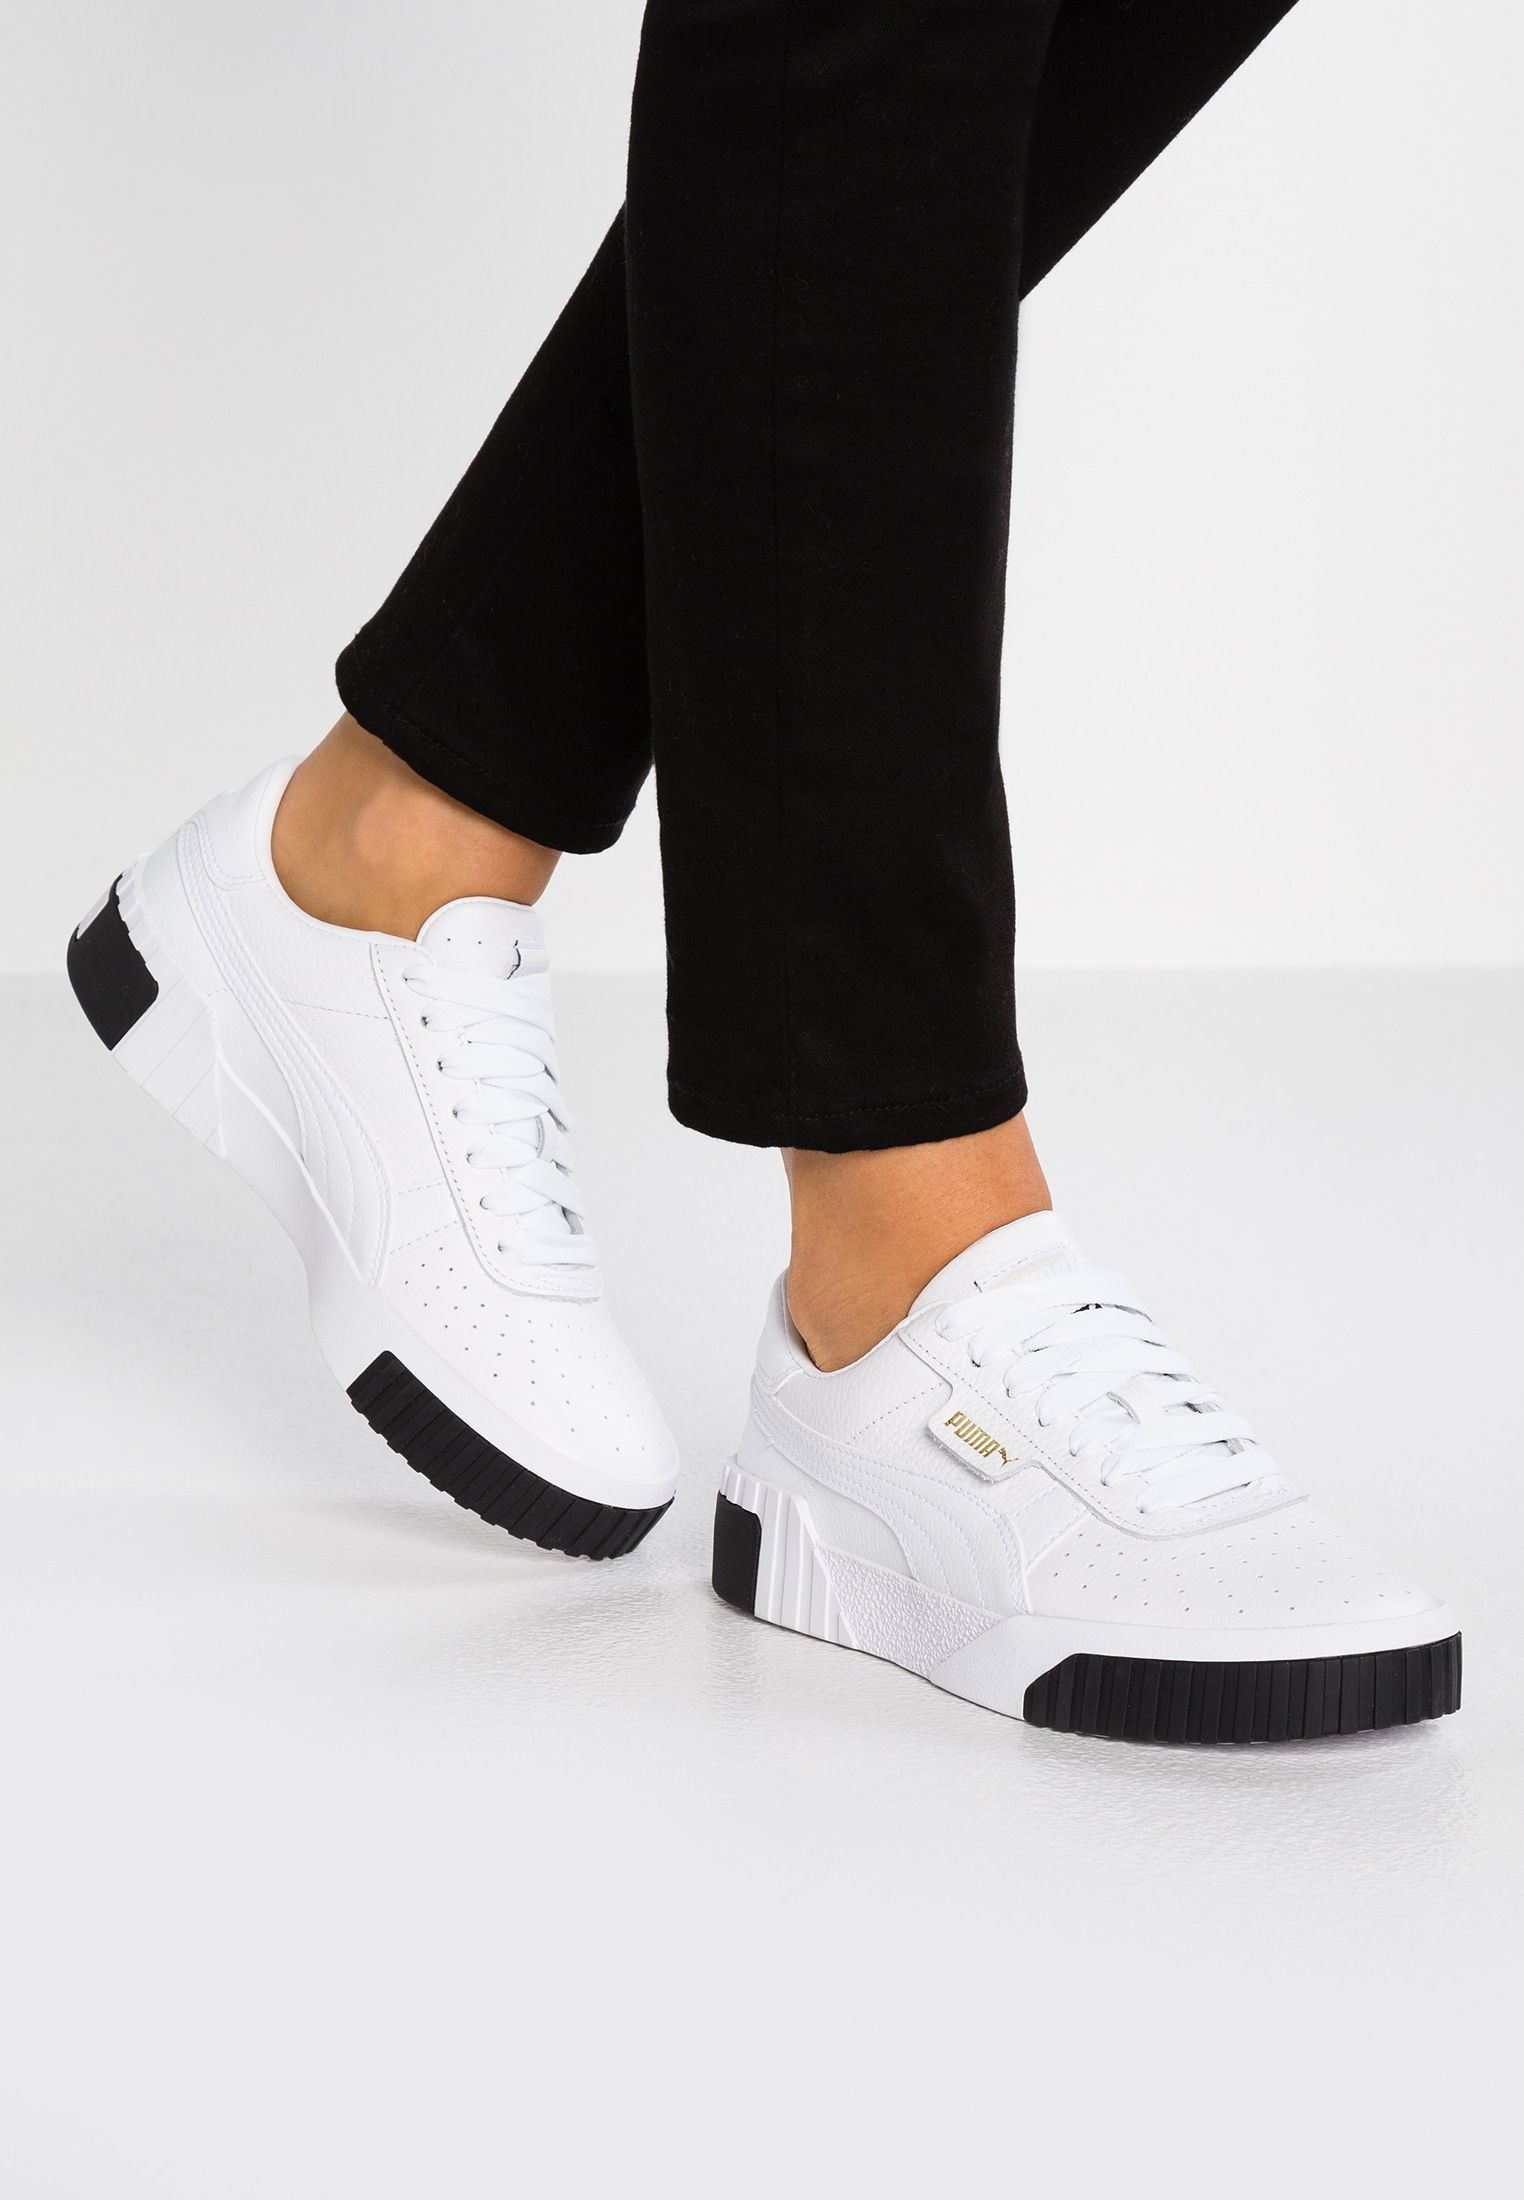 puma cali trainers puma white black